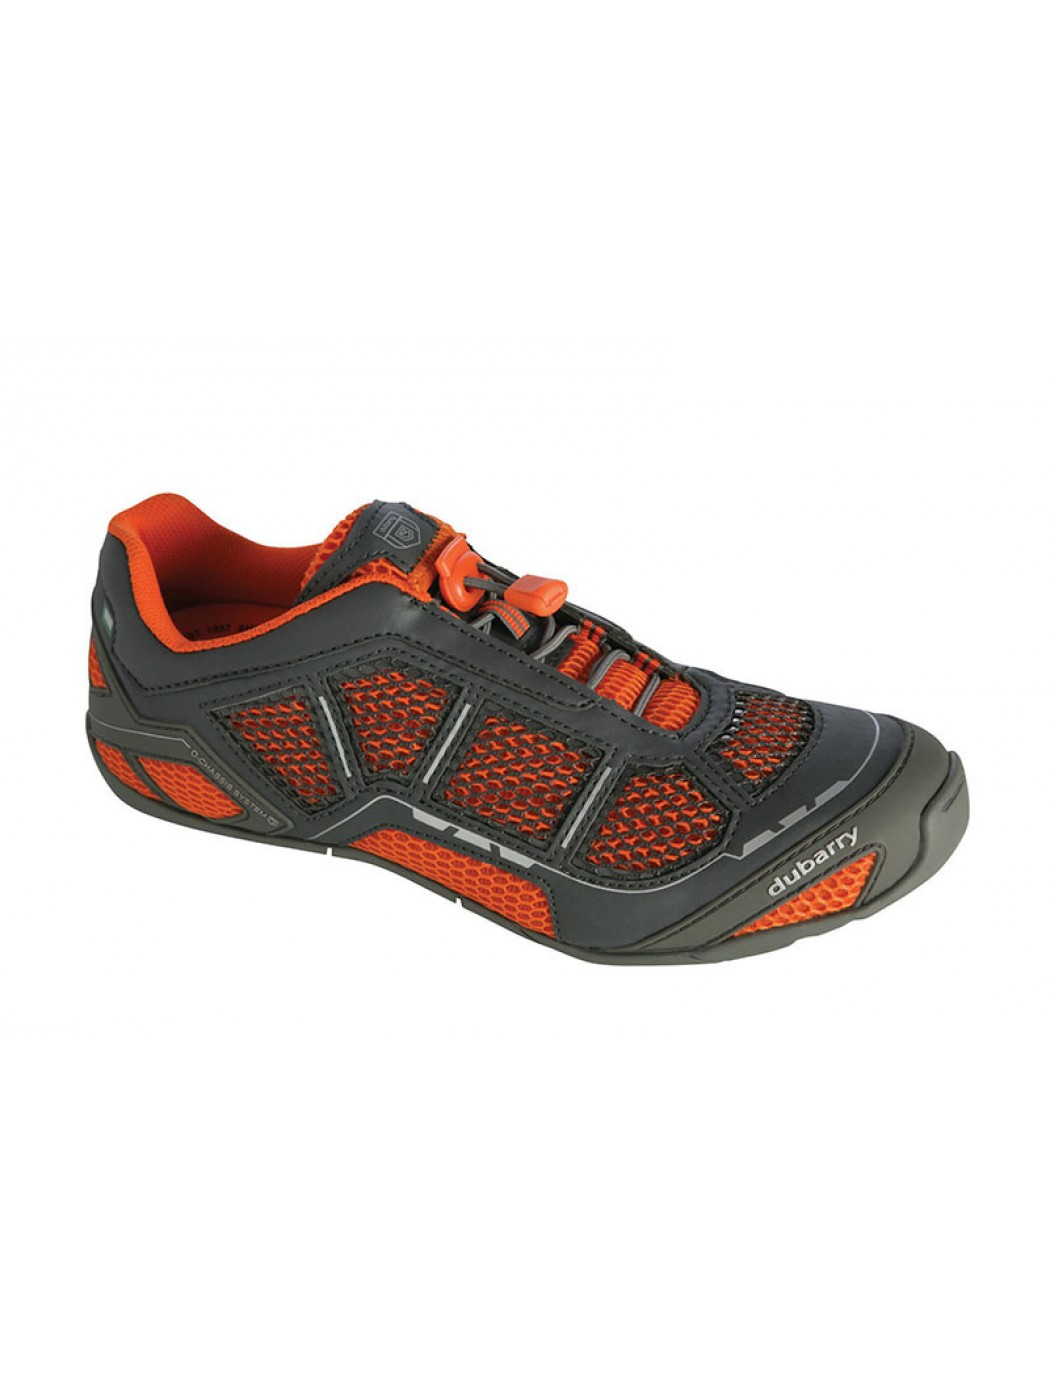 lahinch-aquasport-dark-grey-orange